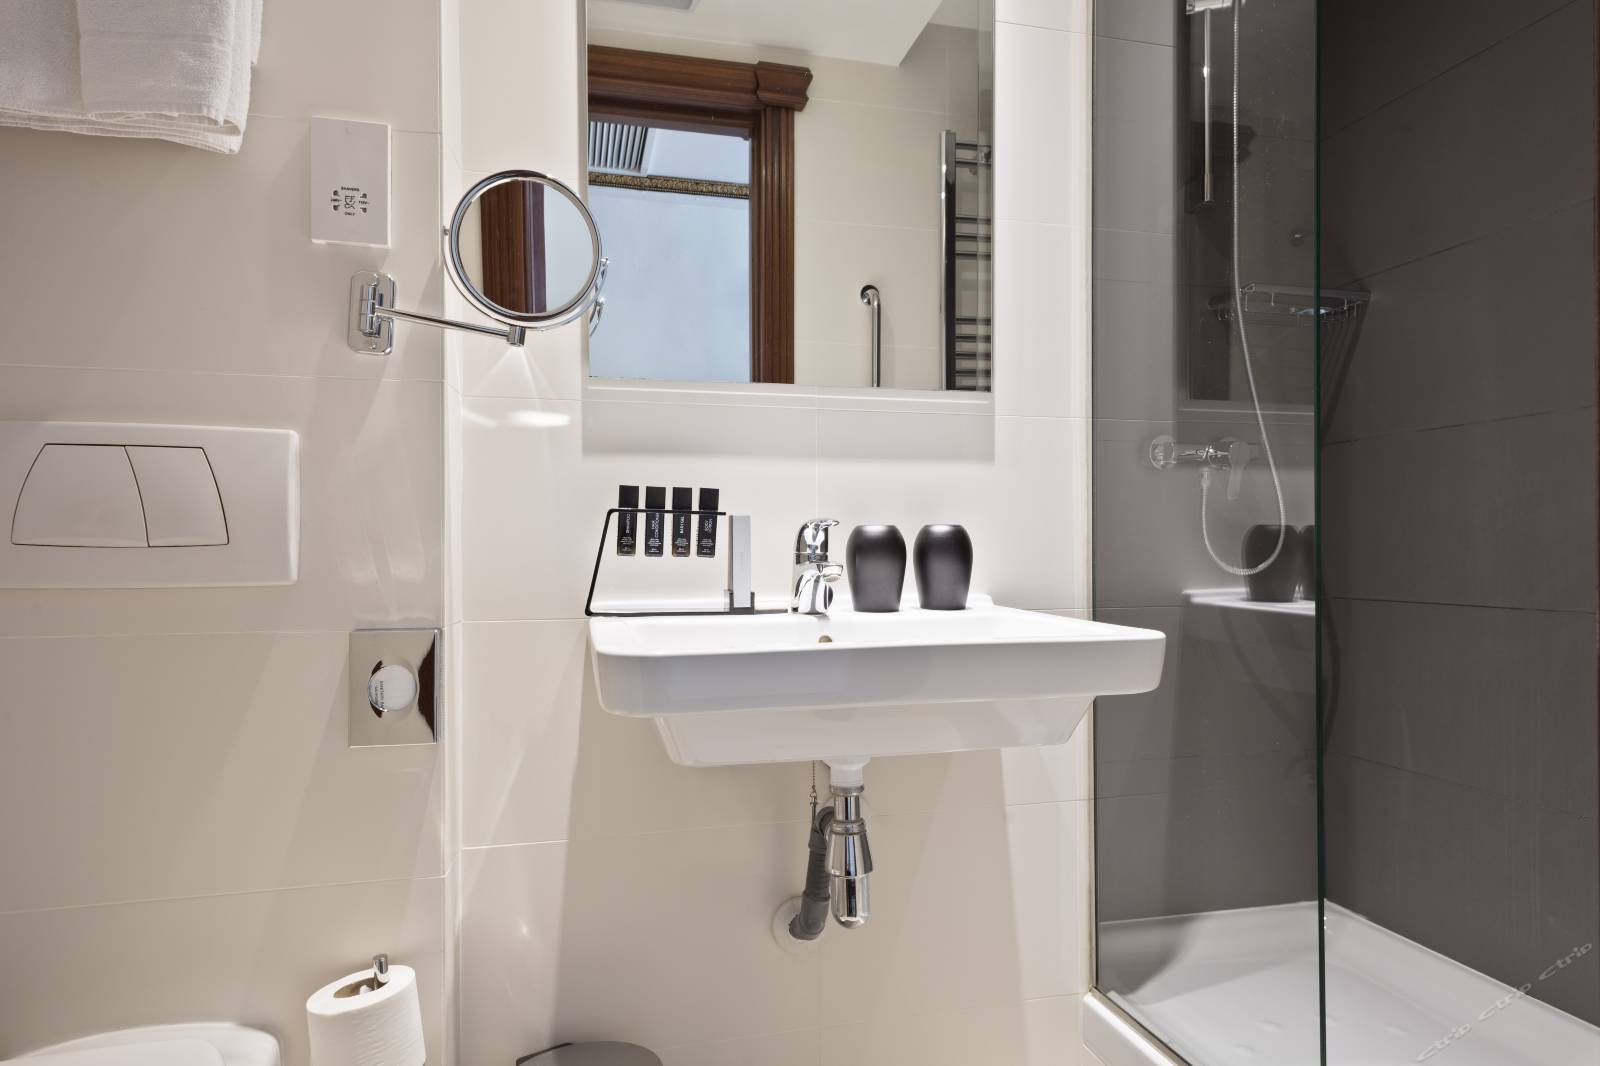 different types art wash basin order now for toilet-16